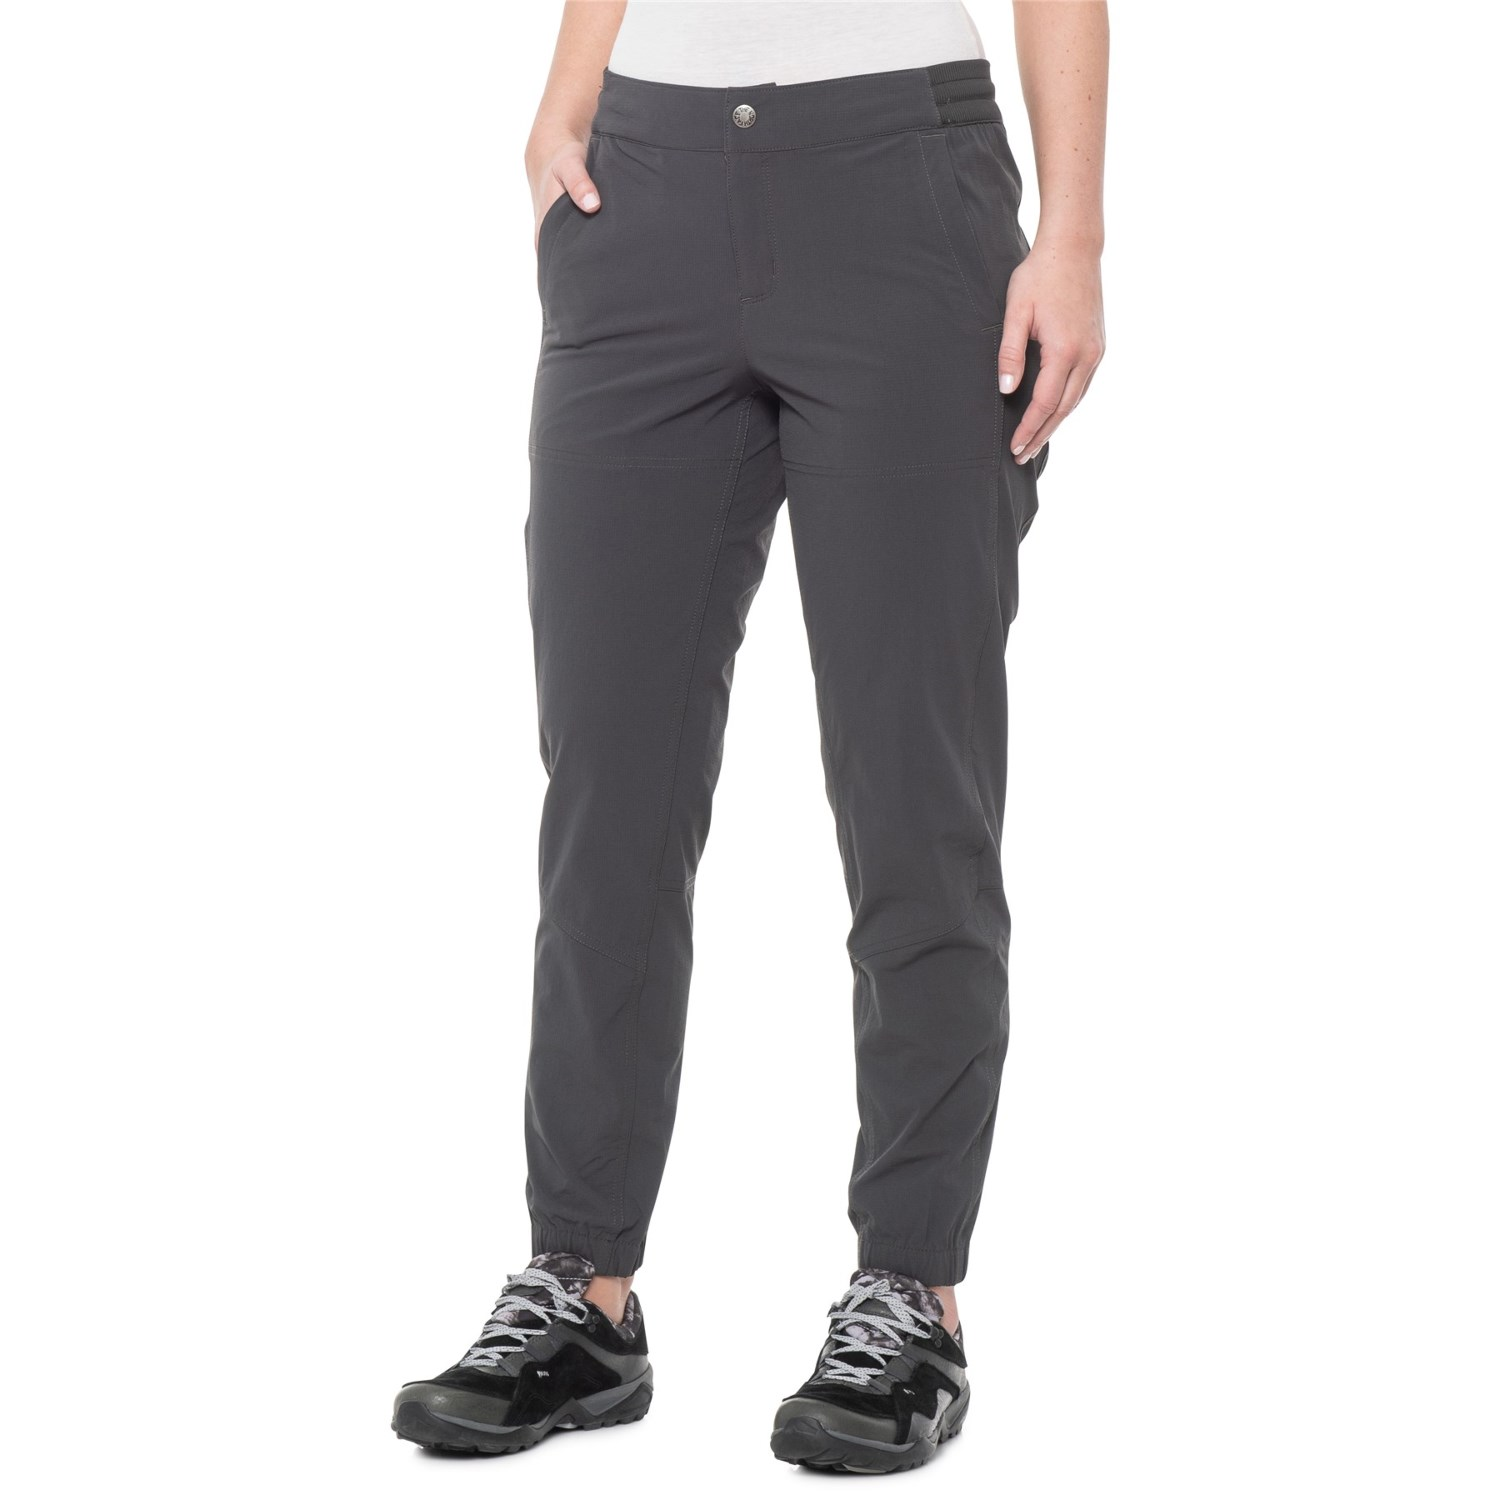 f0c5d74ae The North Face Bouldren Pants - UPF 50 (For Women)